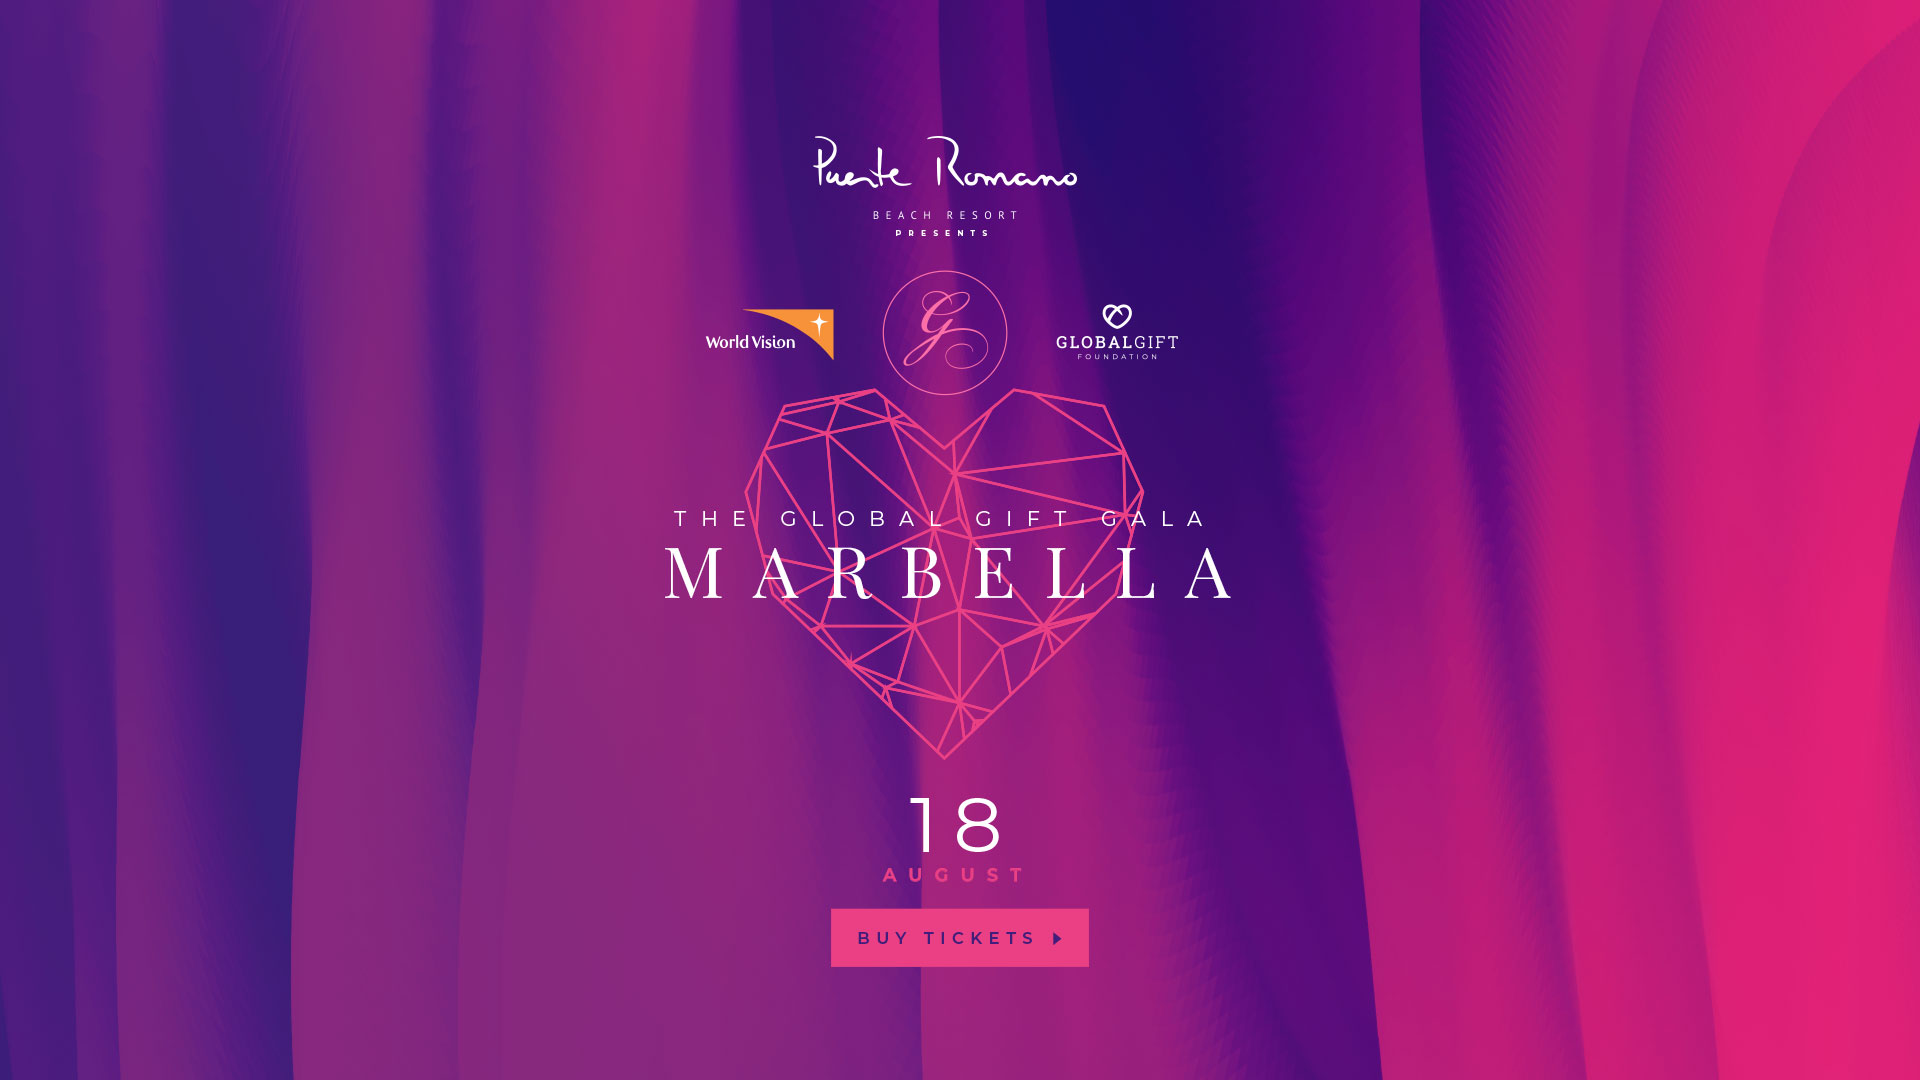 The Global Gift Gala Marbella